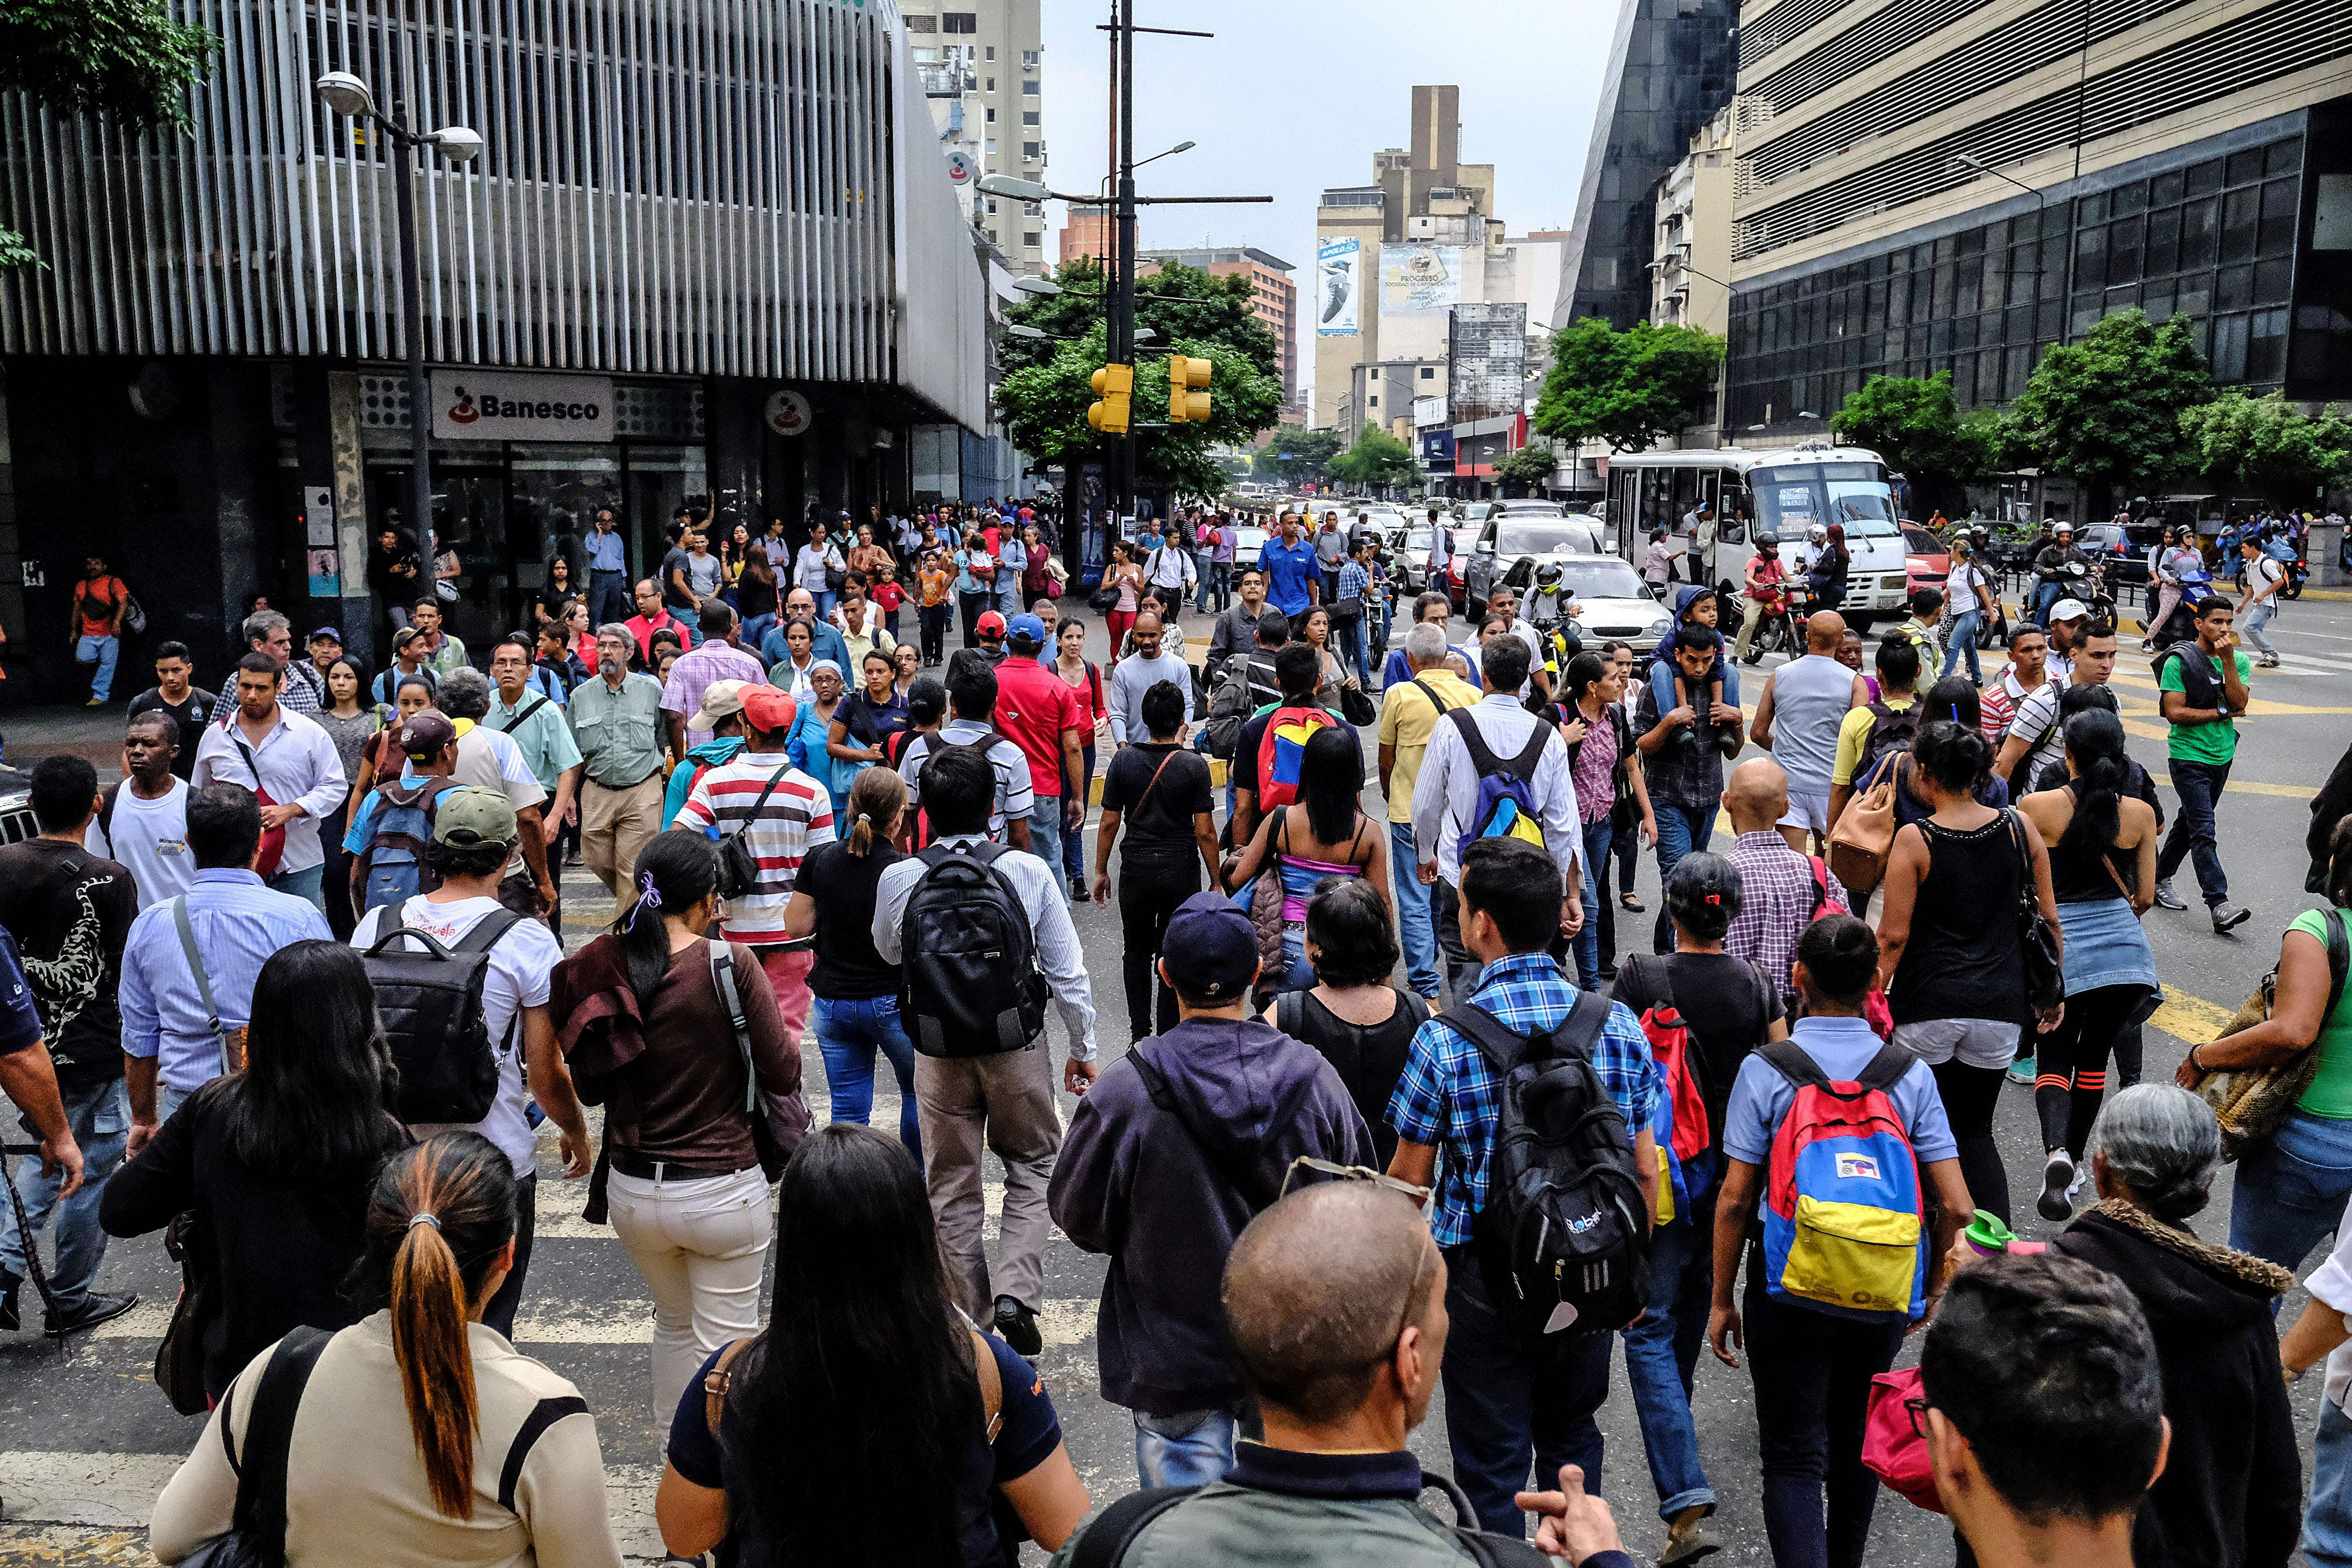 Commuters unable to use the subway due to a partial power cut, flock to the streets in Caracas on March 7, 2019. (MATIAS DELACROIX/AFP/Getty Images)